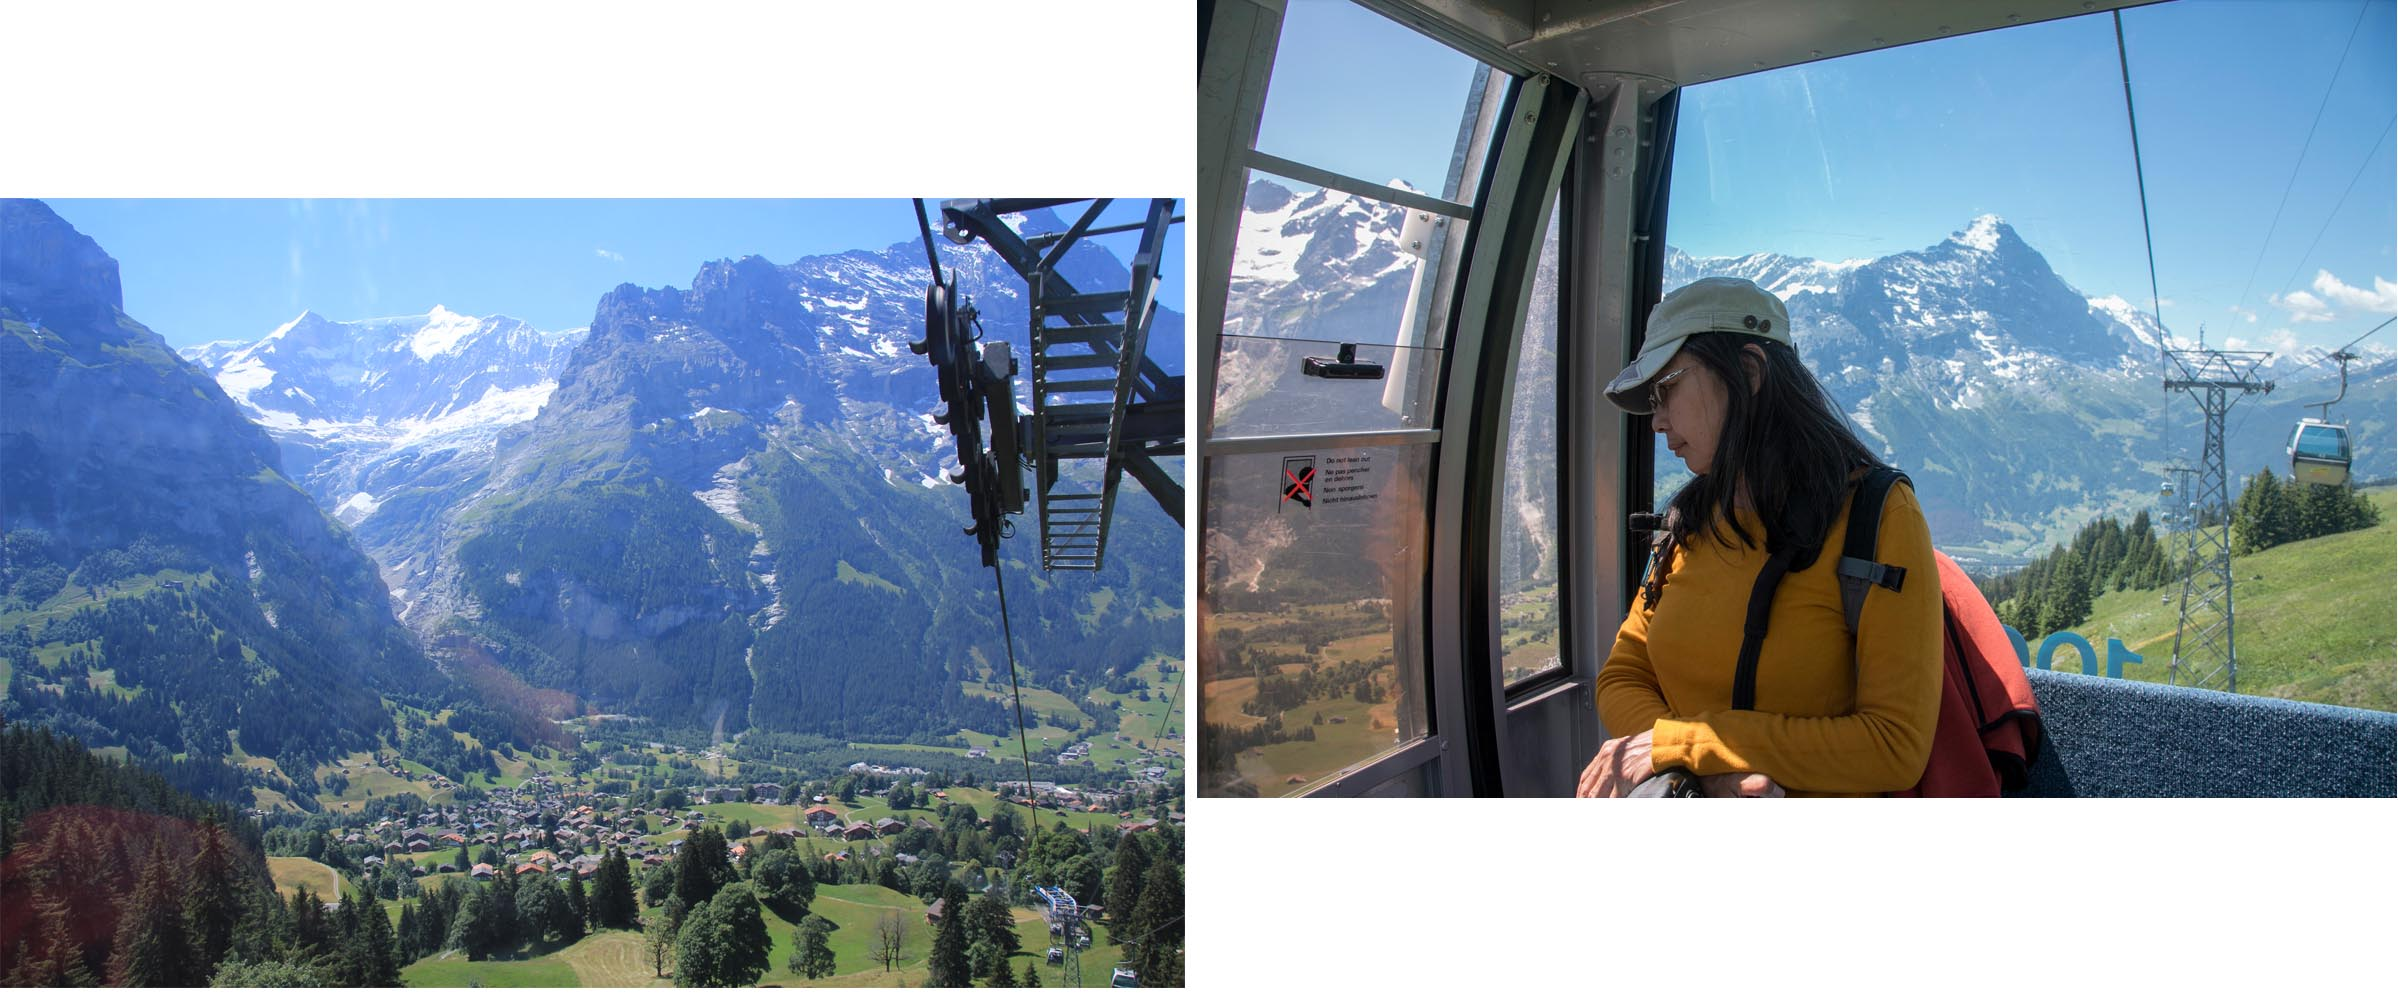 Stunning scenery as seen from the cable car